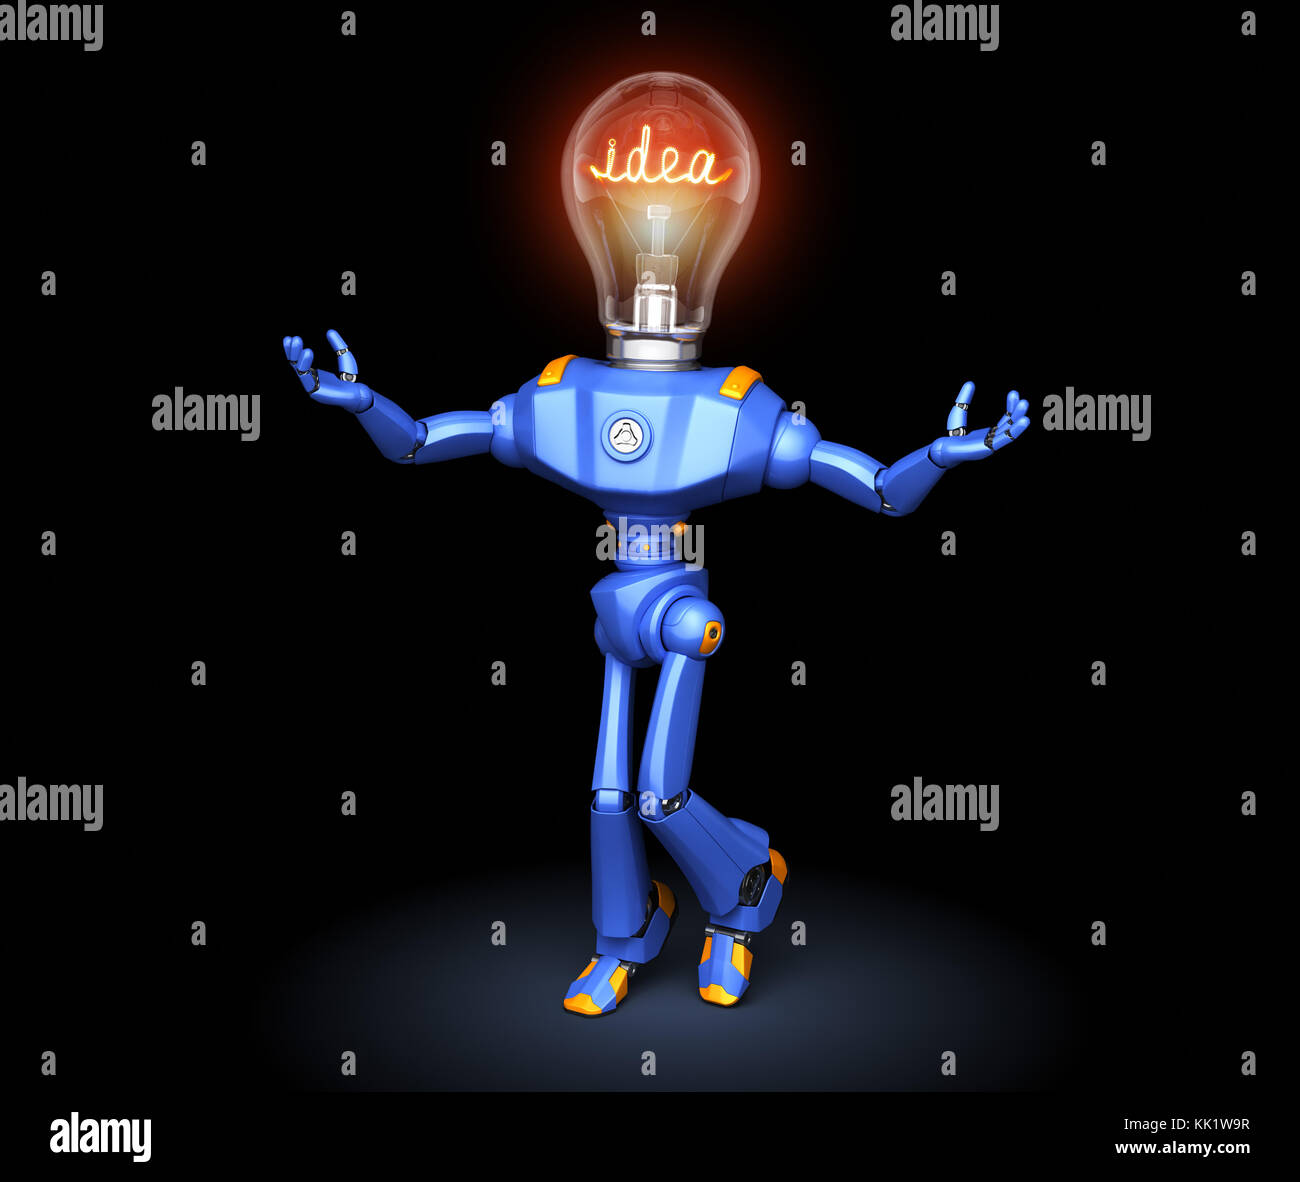 Cute robot character got idea. 3D illustration - Stock Image